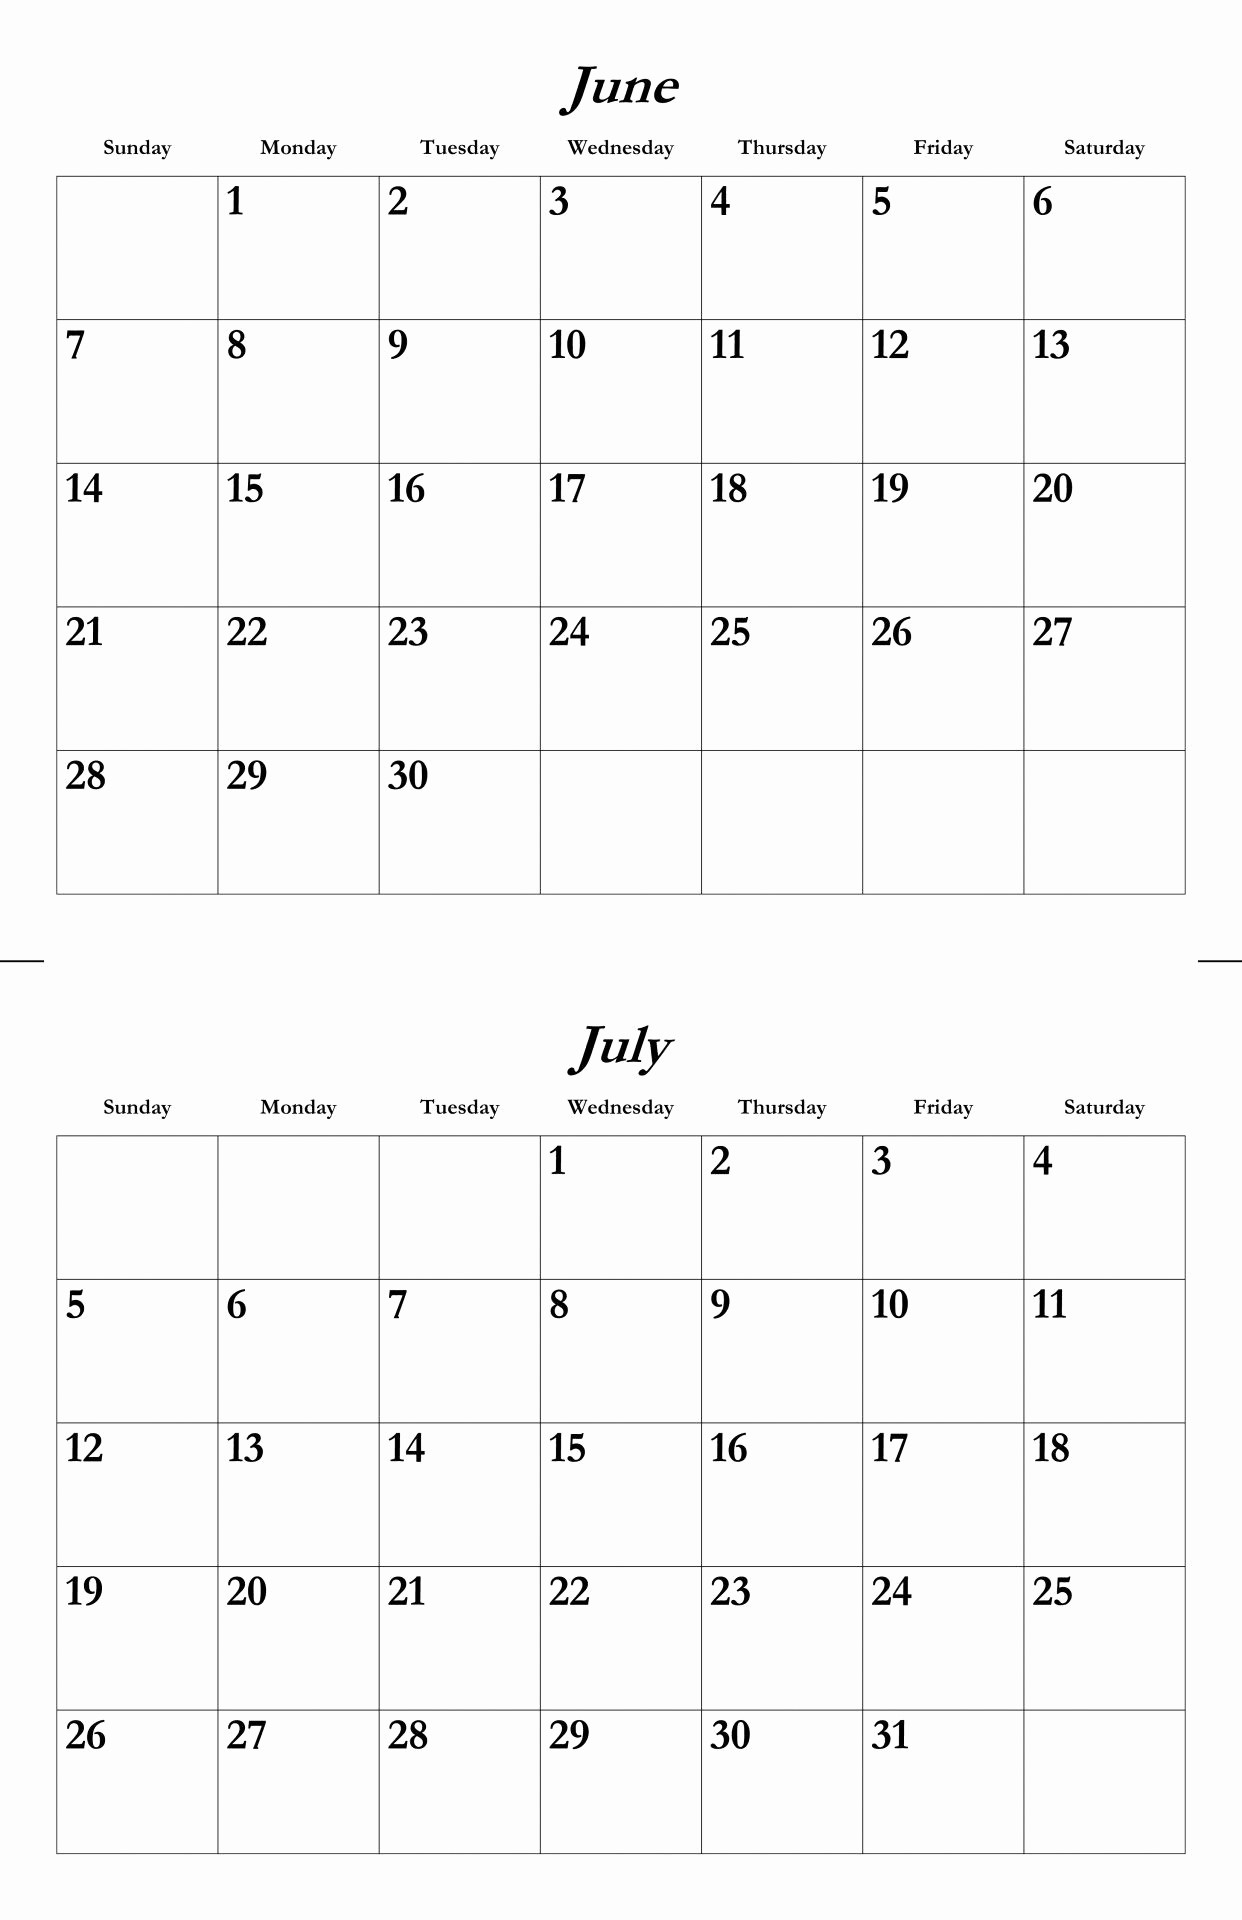 Calendar Template for June 2015 Beautiful Free Printable Calendar June 2015 Cheatervz